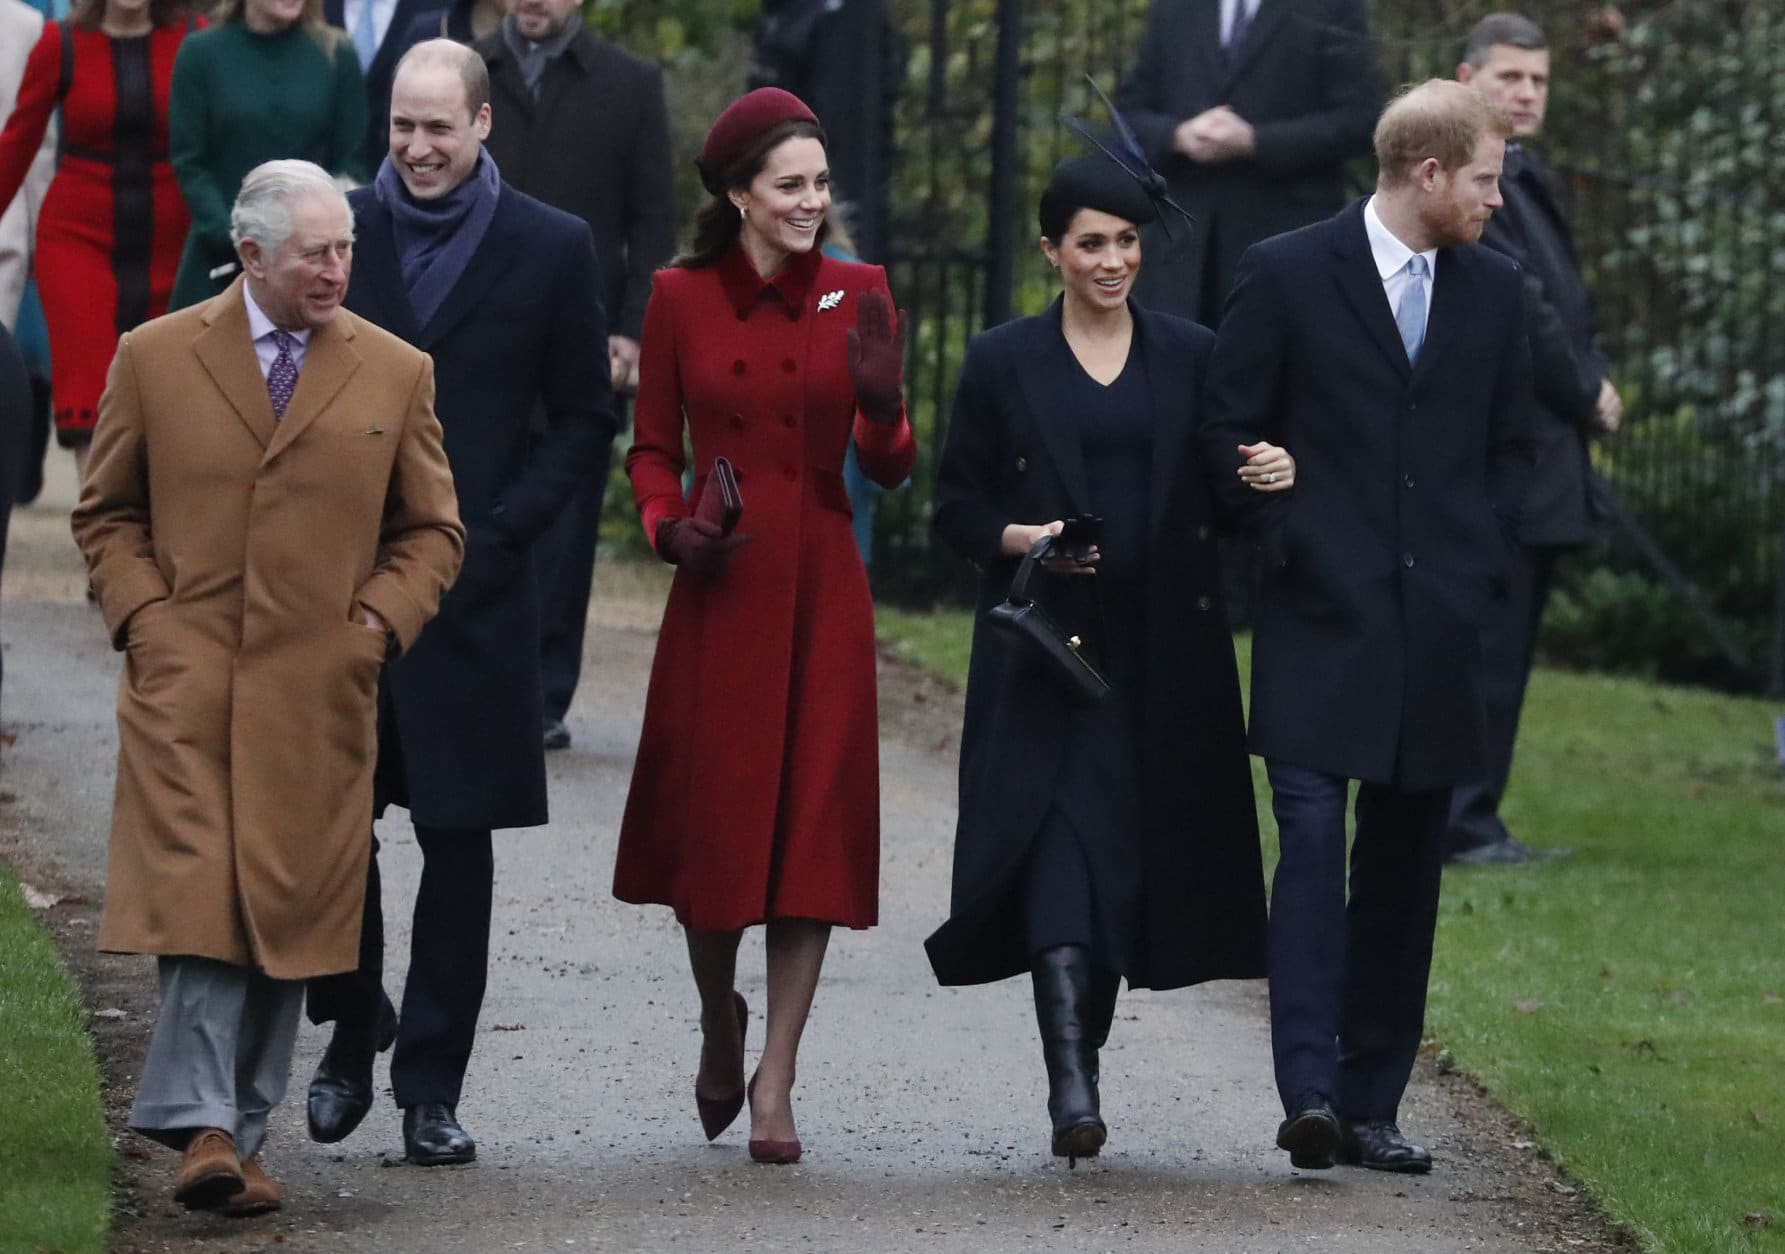 Britain's Royal family arrive to attend the Christmas day service at St Mary Magdalene Church in Sandringham in Norfolk, England, Tuesday, Dec. 25, 2018. (AP PhotoFrank Augstein)